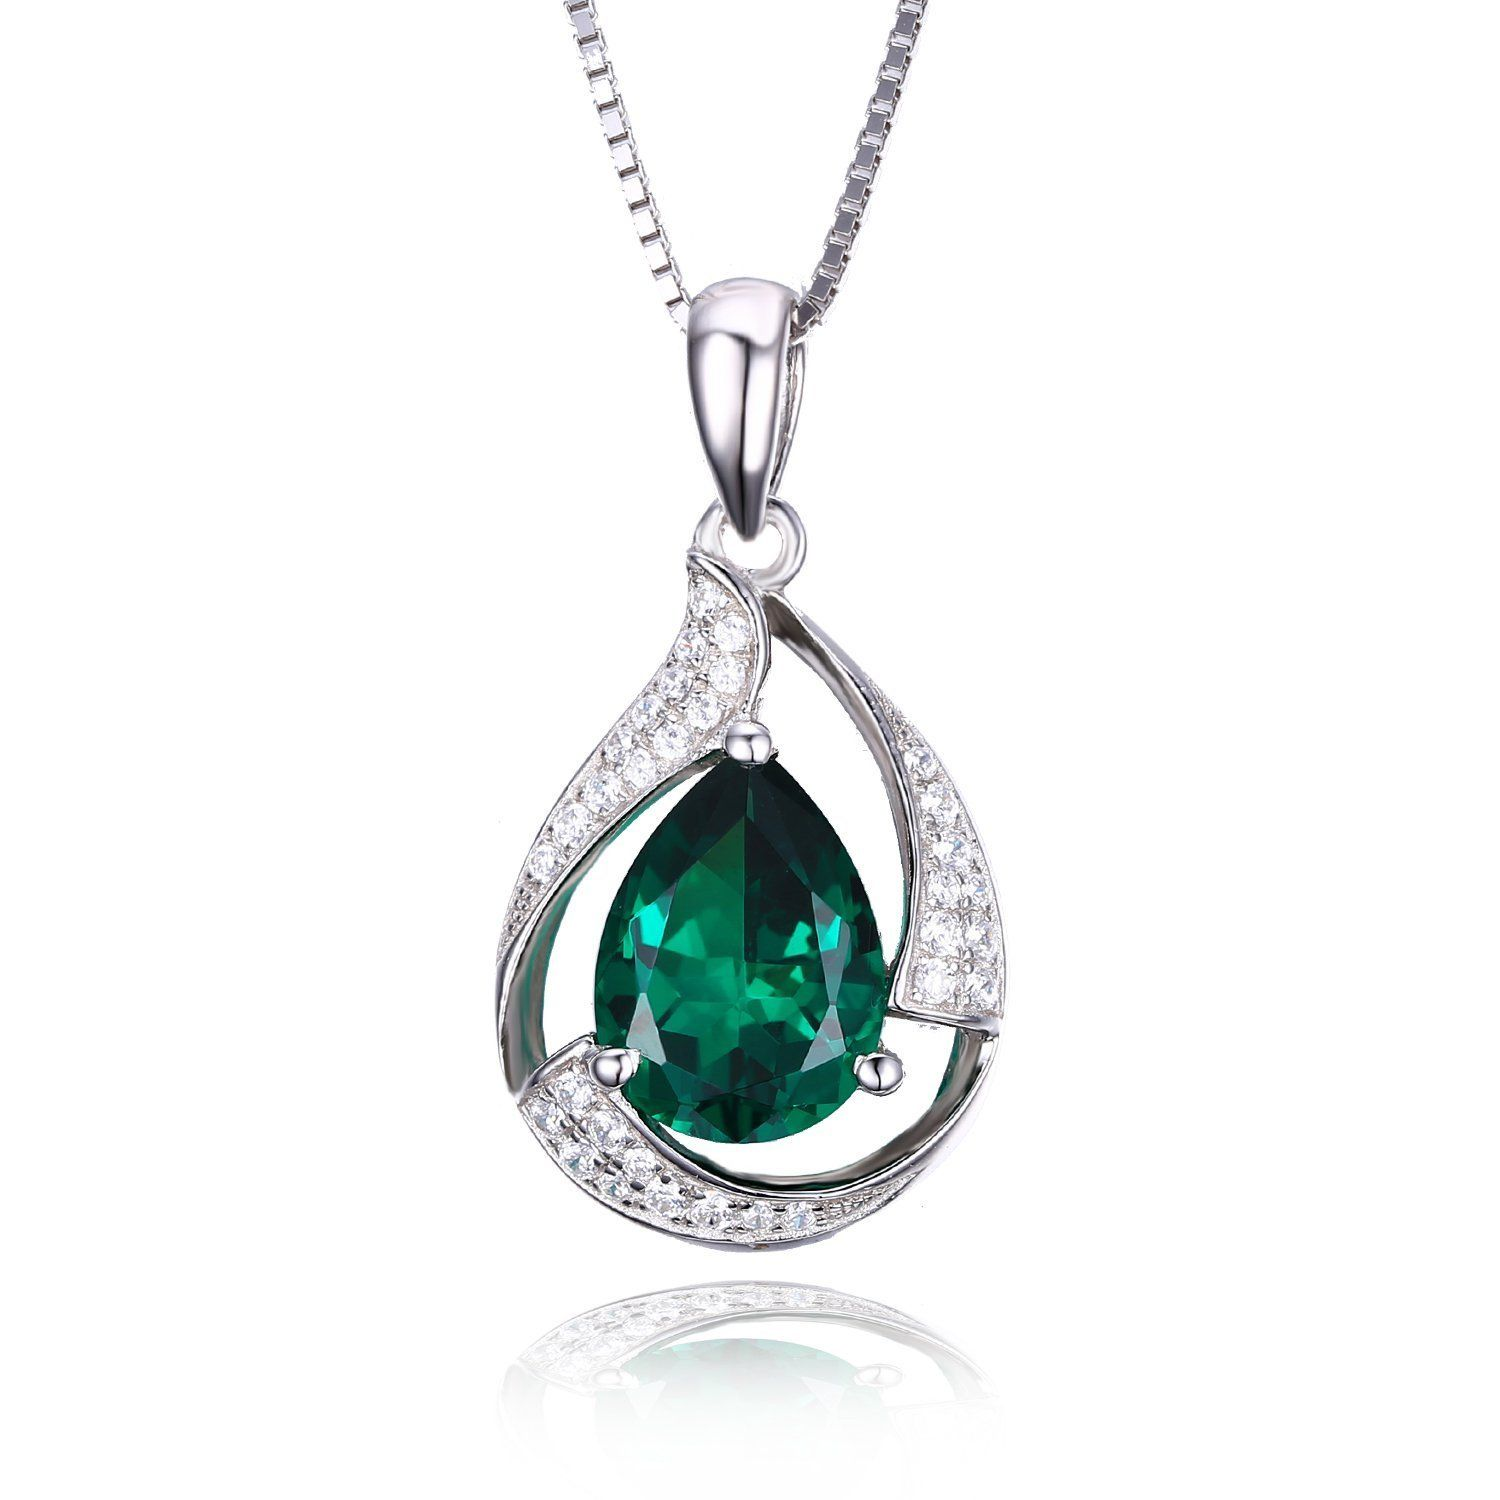 JewelryPalace Pear 2.7ct Simulated Green Nano Russian Emerald 925 Sterling Silver Pendant Necklace 18 Inches 9H9FC6k